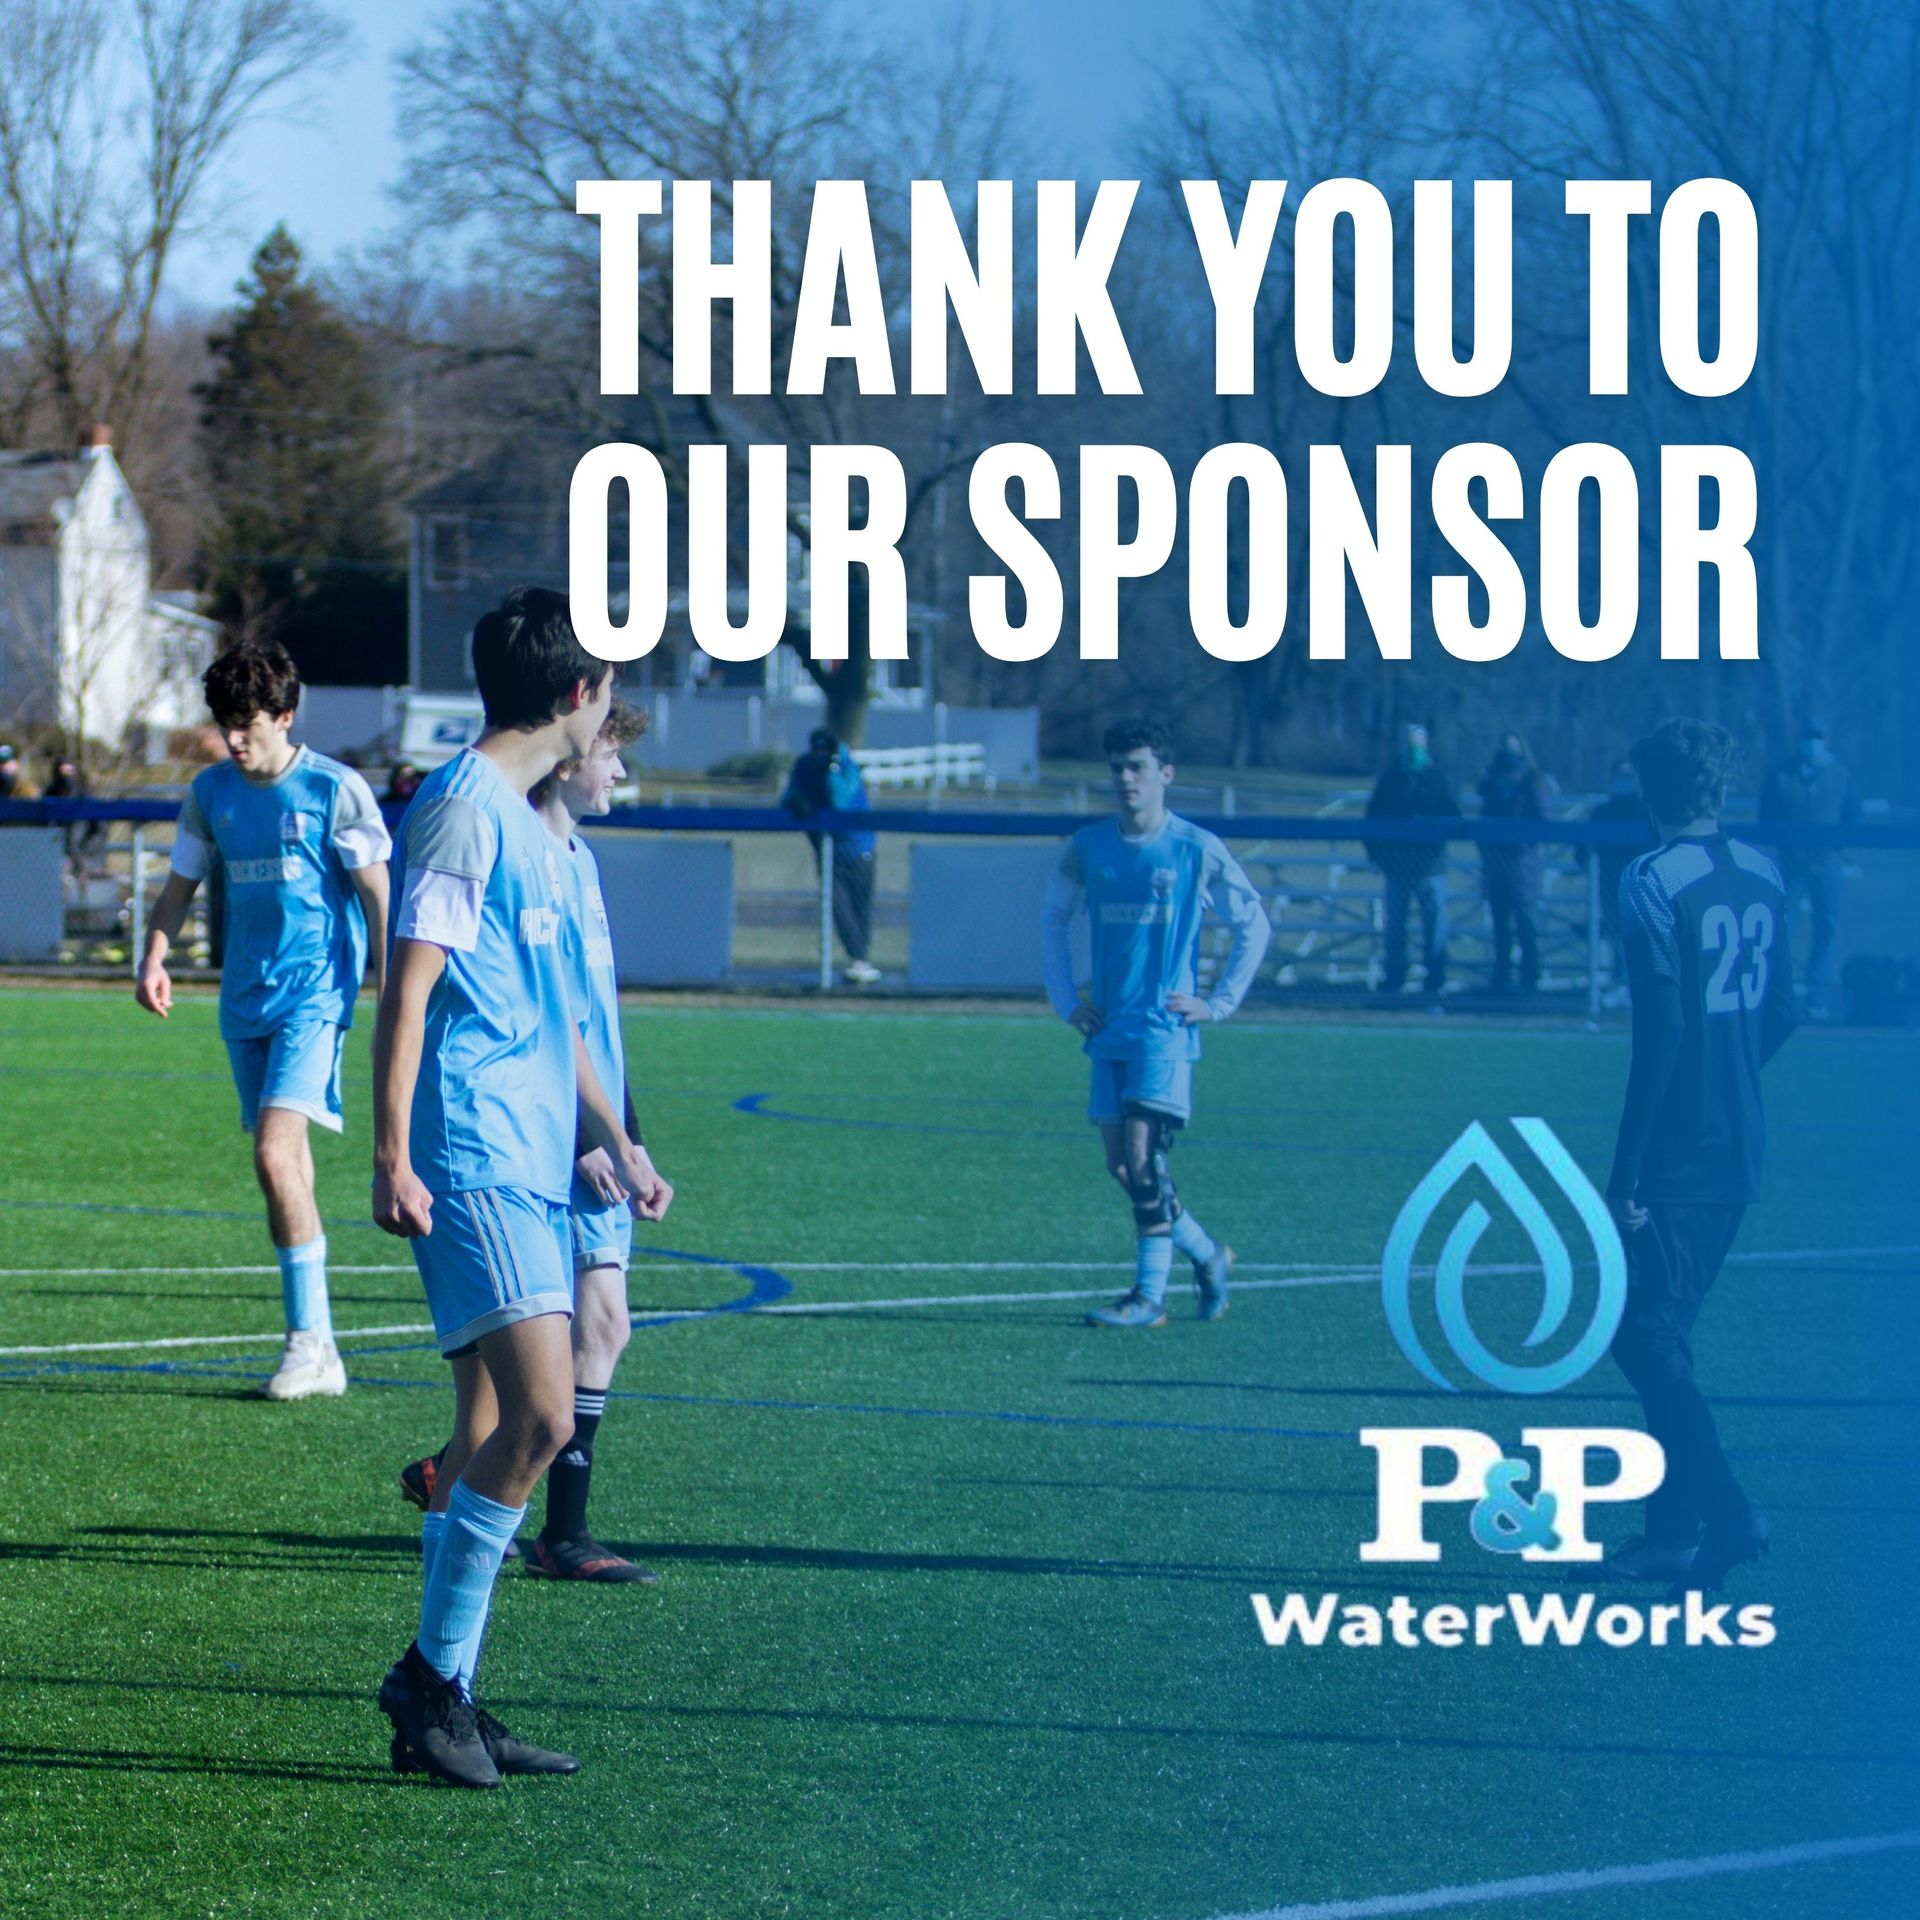 Thank you to our sponsor: P&P WaterWorks